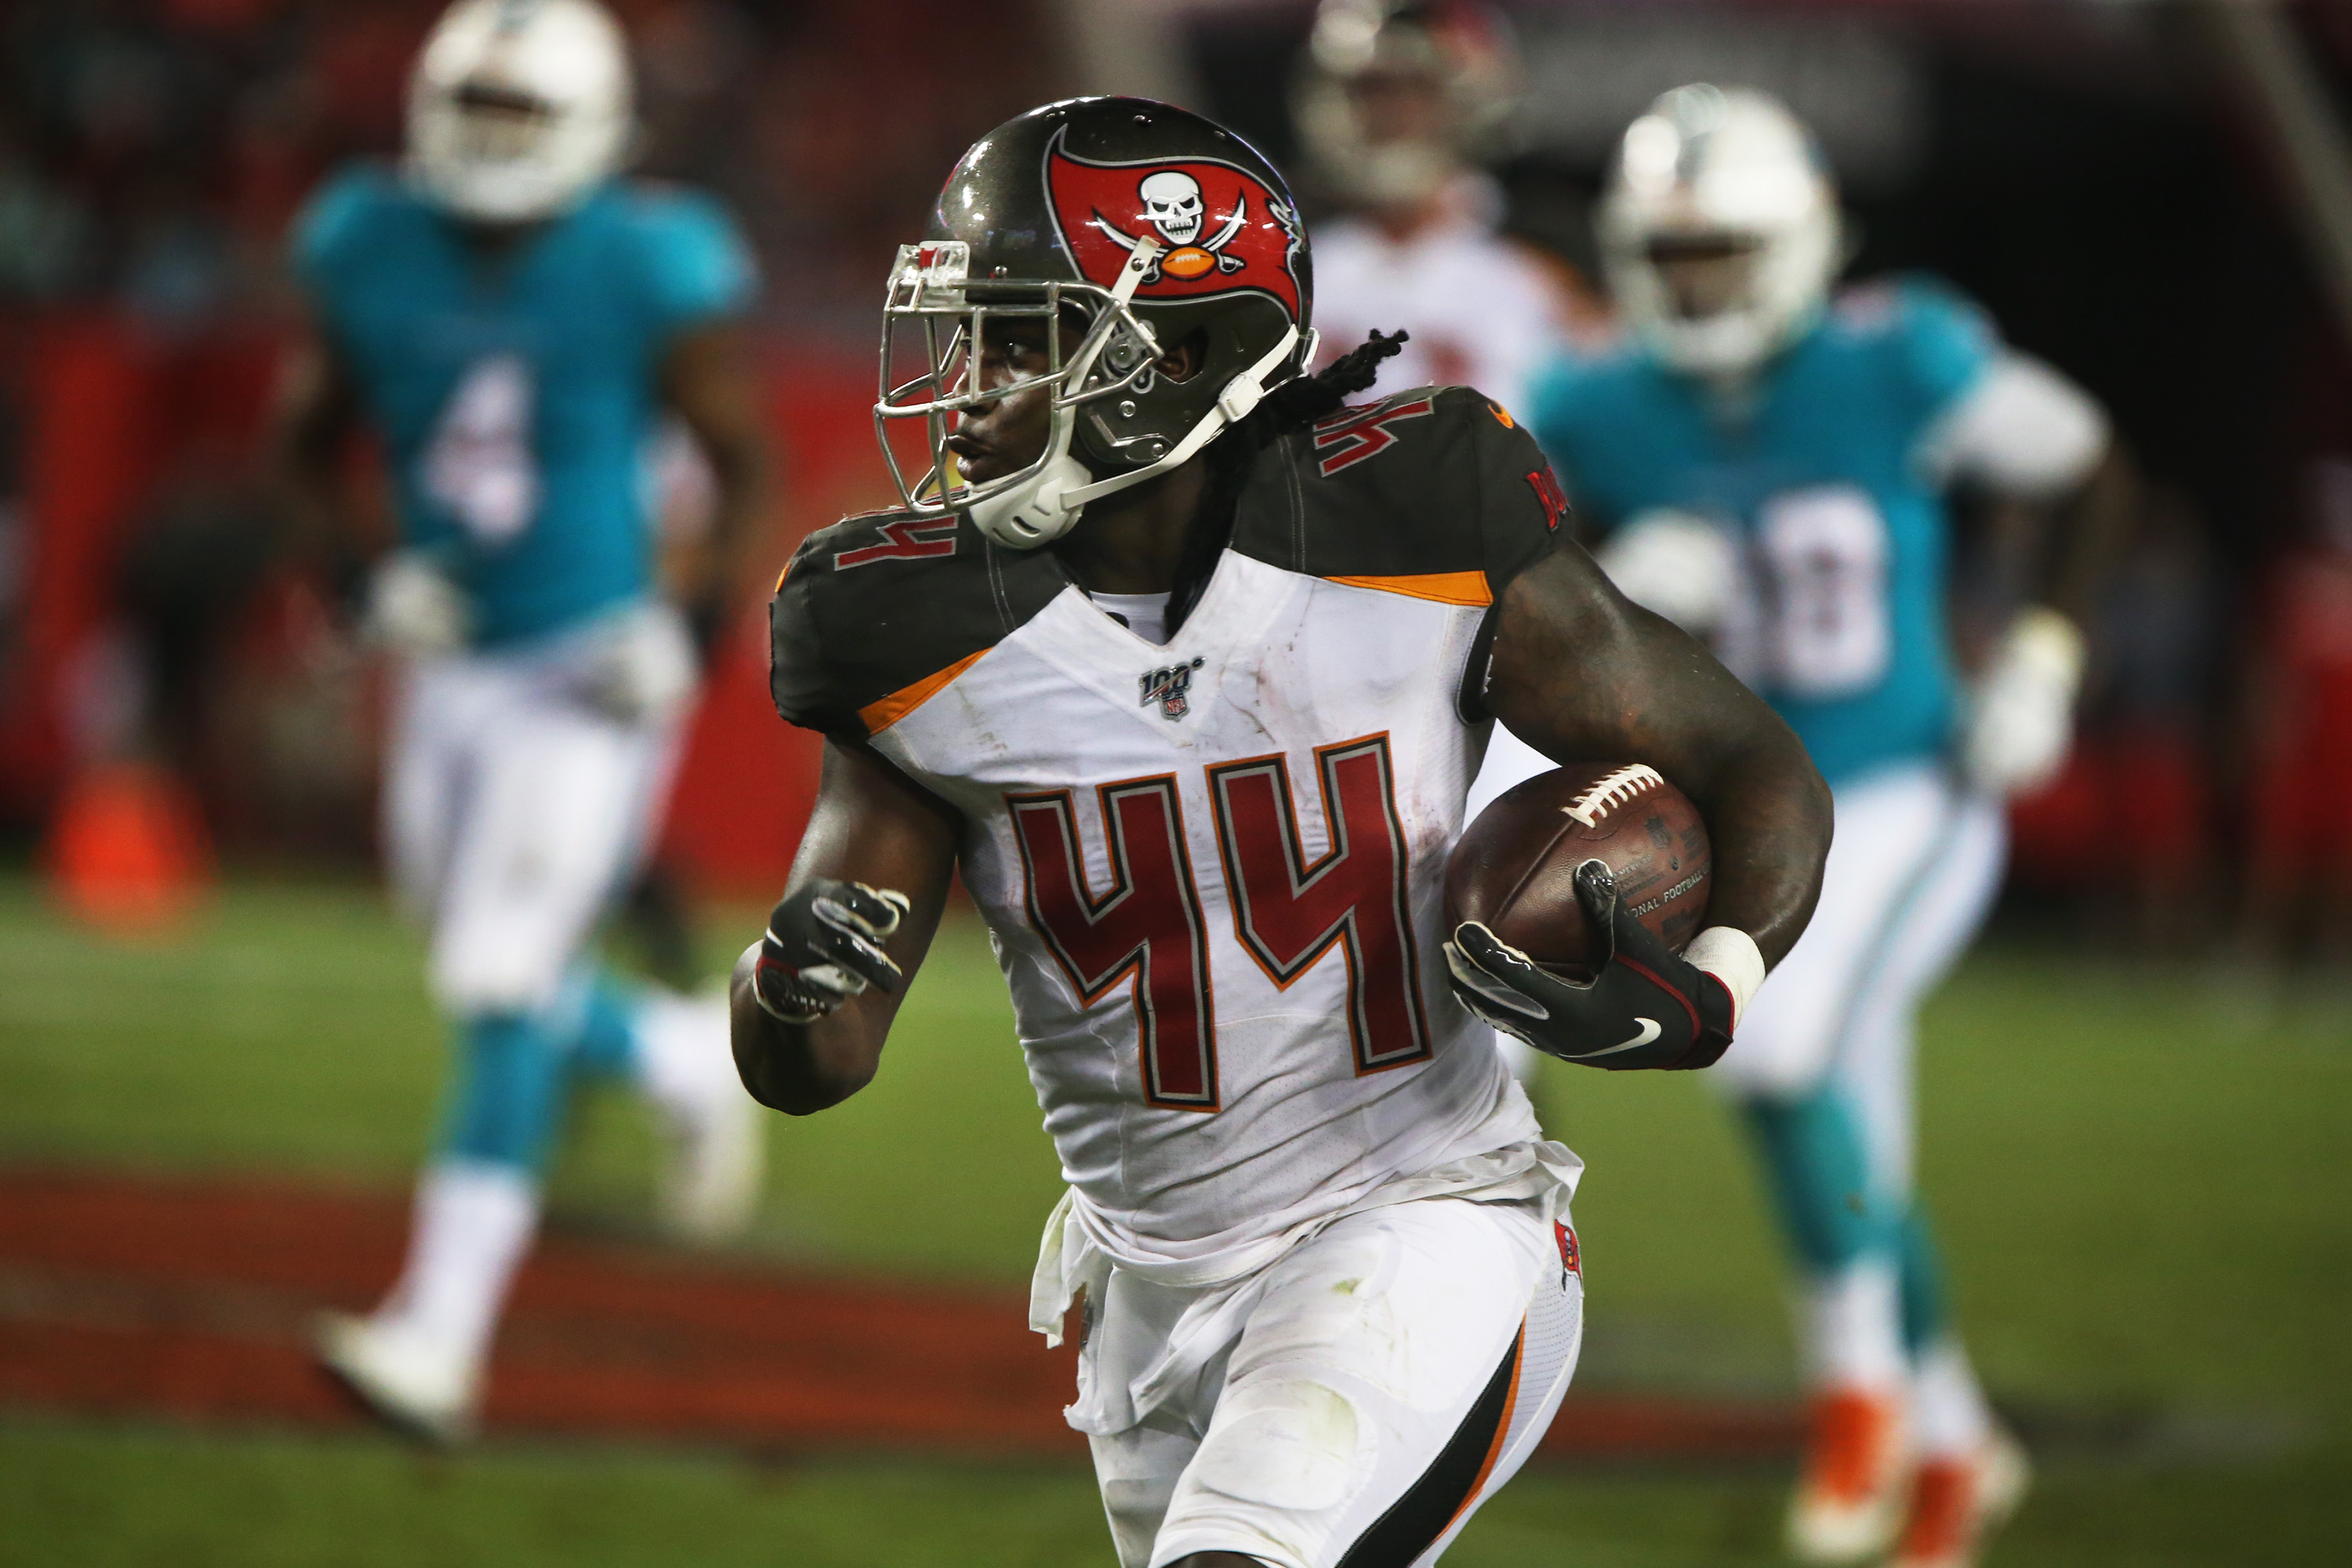 With training camp over, here's what we know about the Bucs